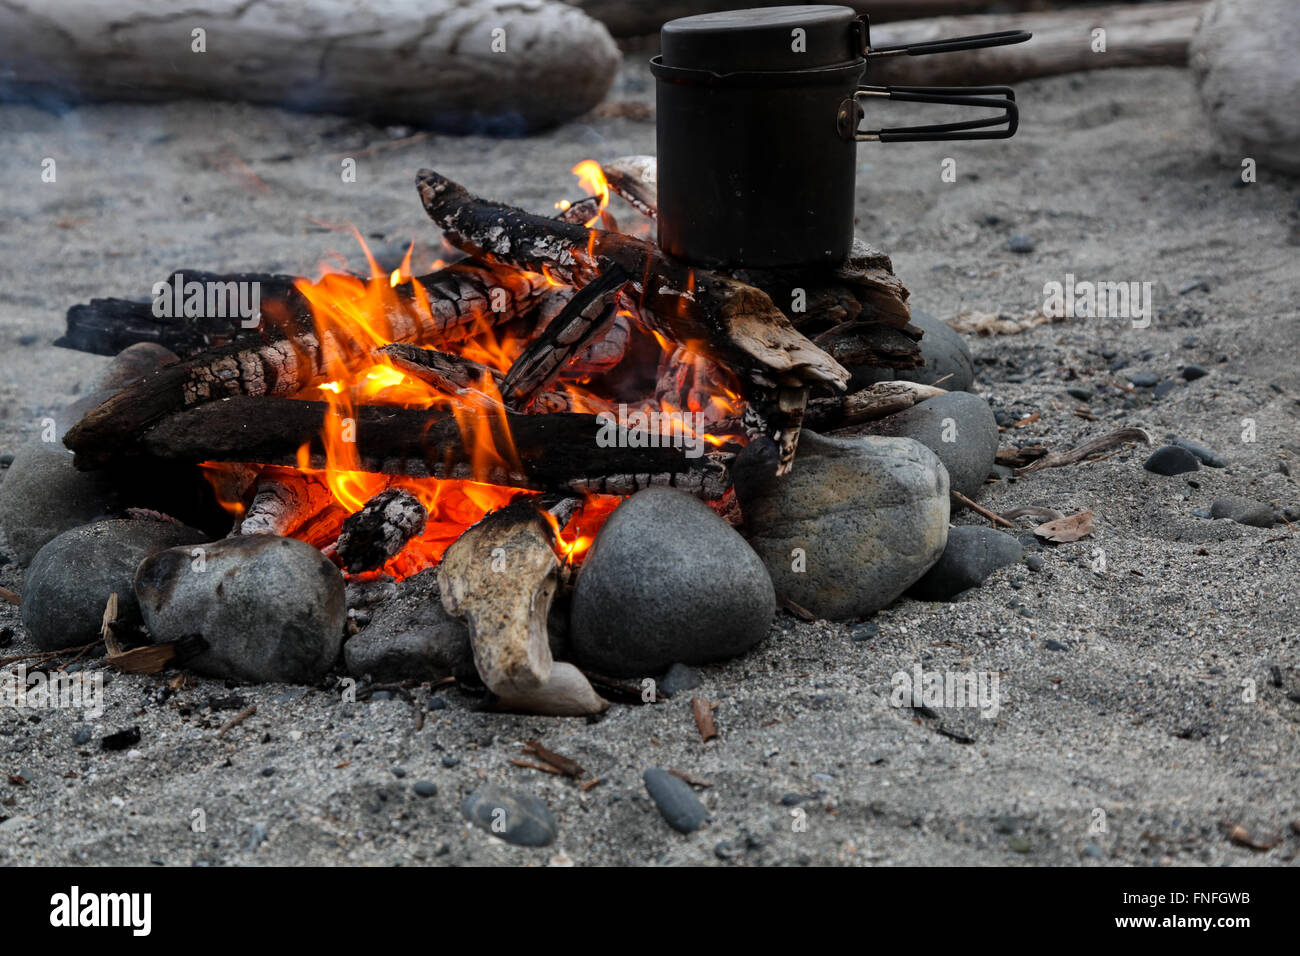 Backcountry cooking over a beach fire, Nootka Island, British Columbia - Stock Image